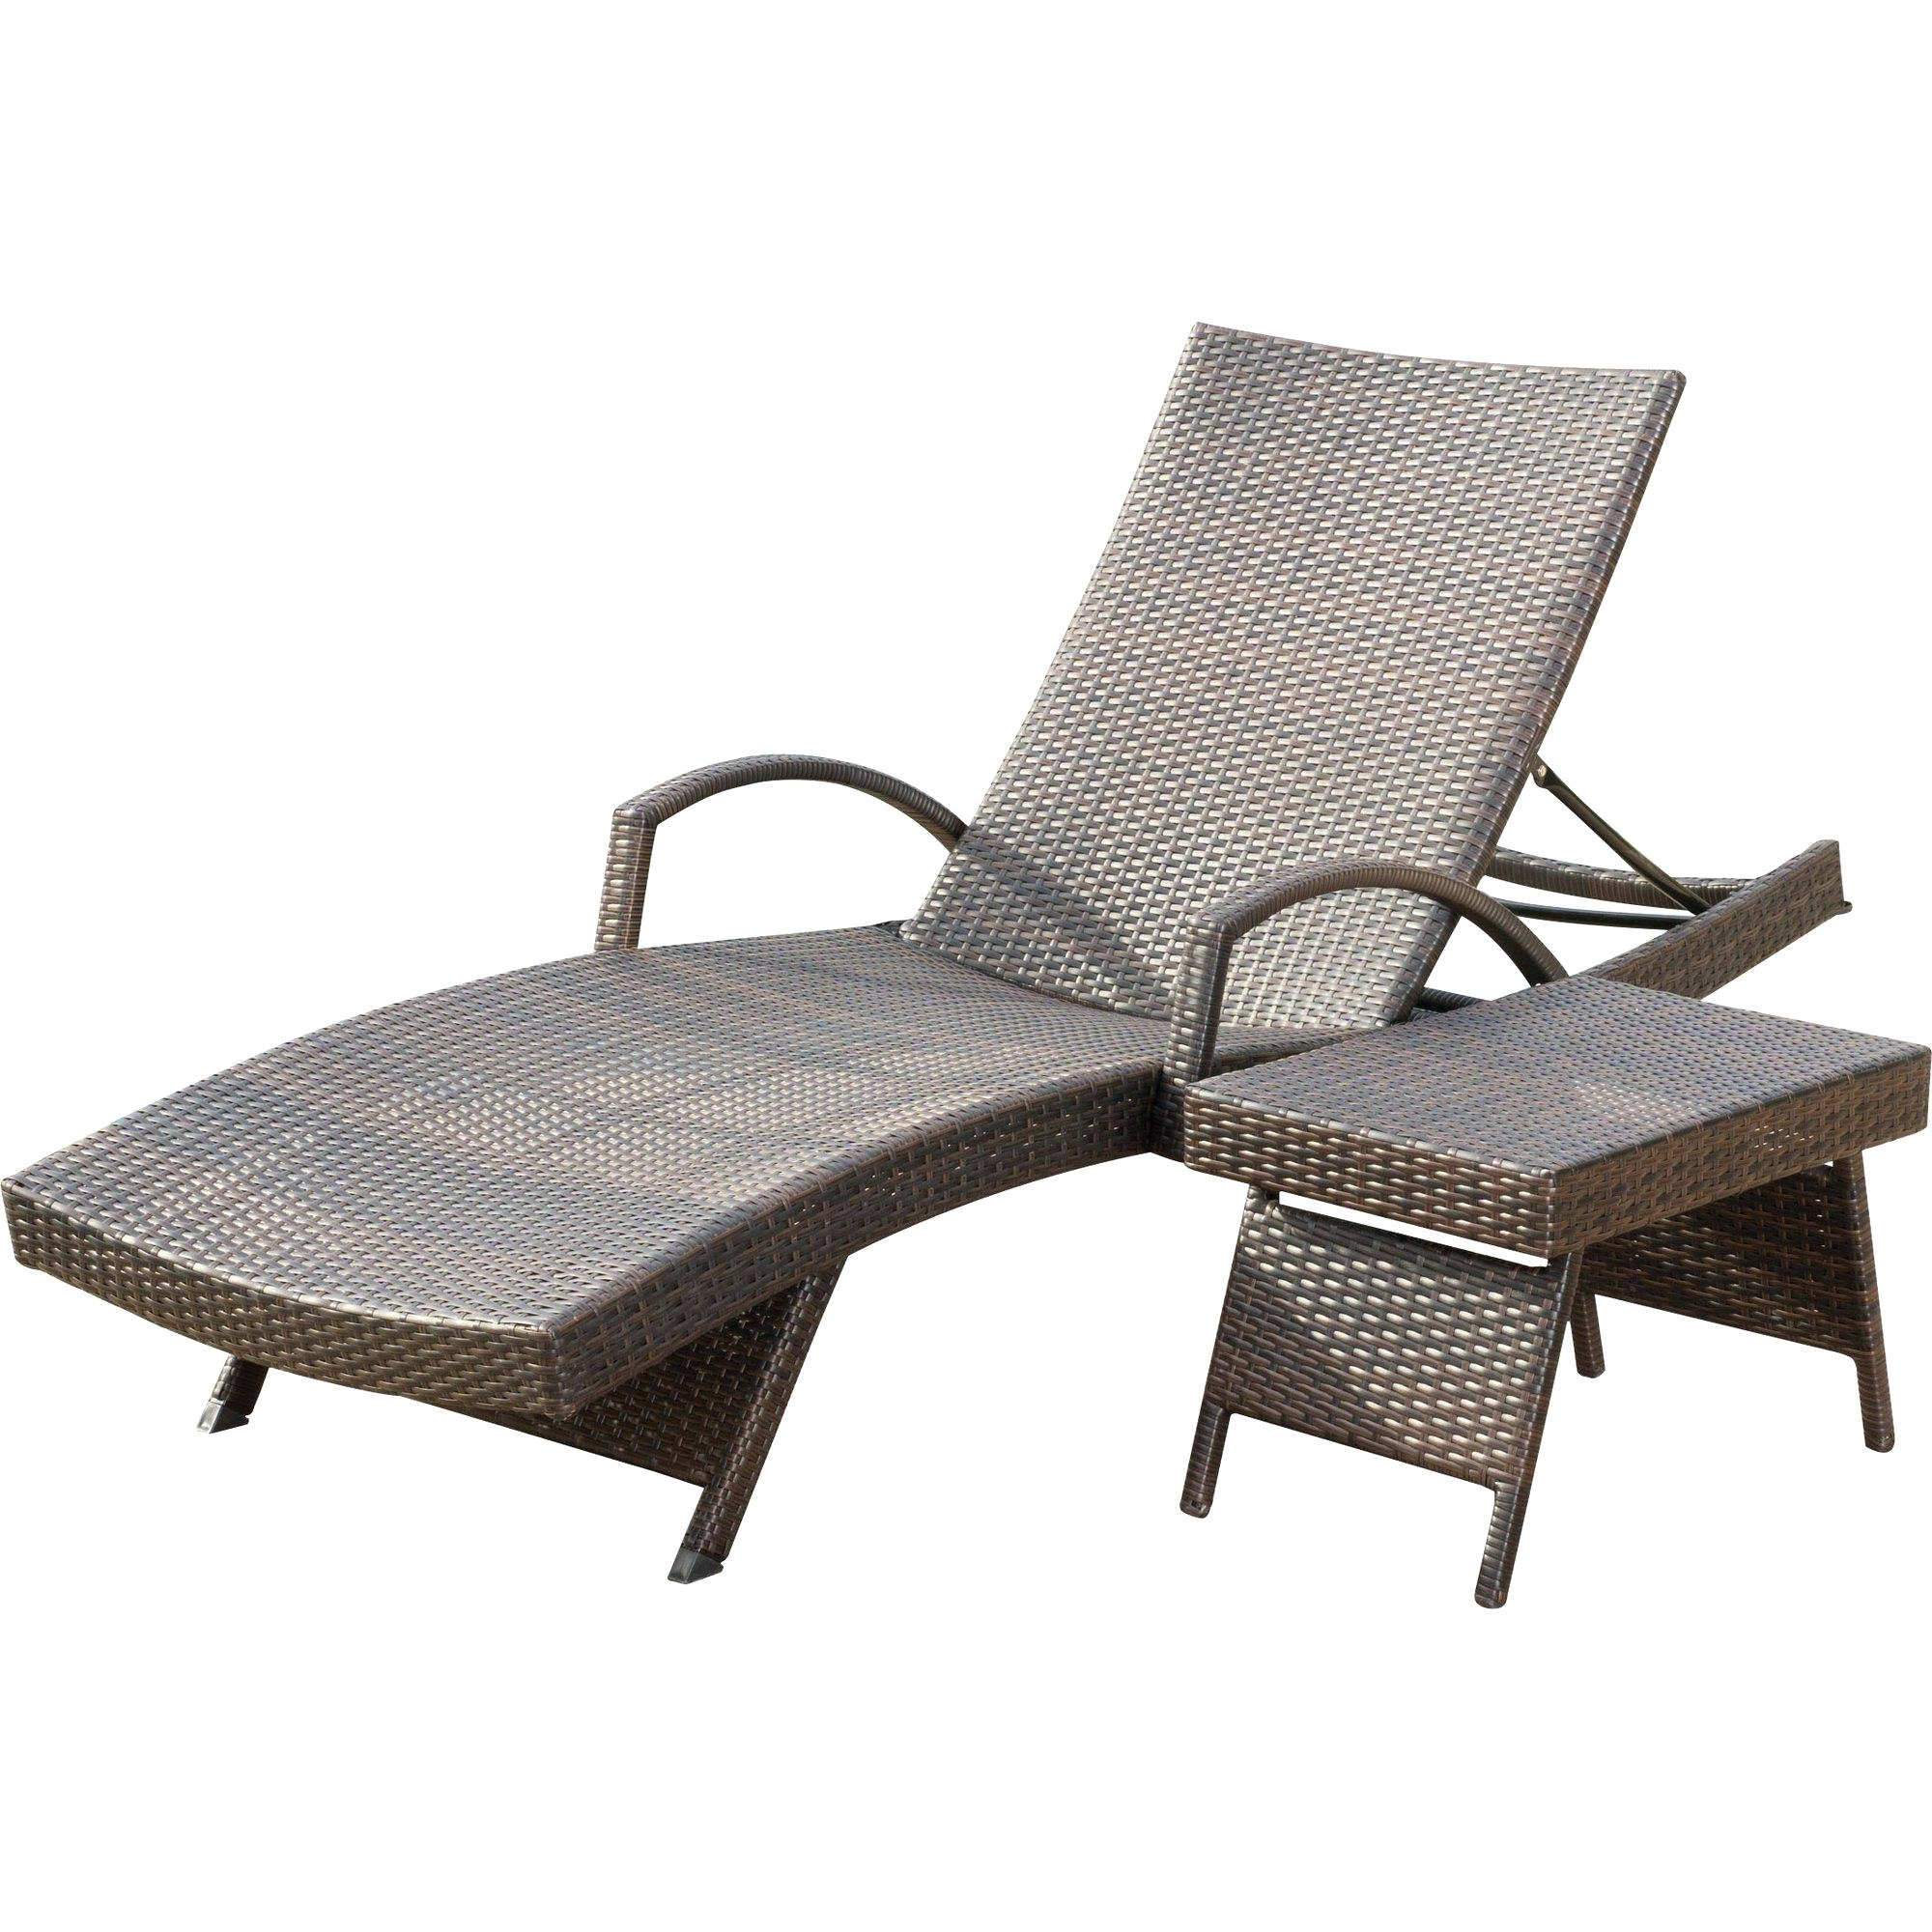 White Wicker Chaise Lounges With Regard To Most Current Eliana Outdoor Brown Wicker Chaise Lounge Chairs (Set Of  (View 14 of 15)